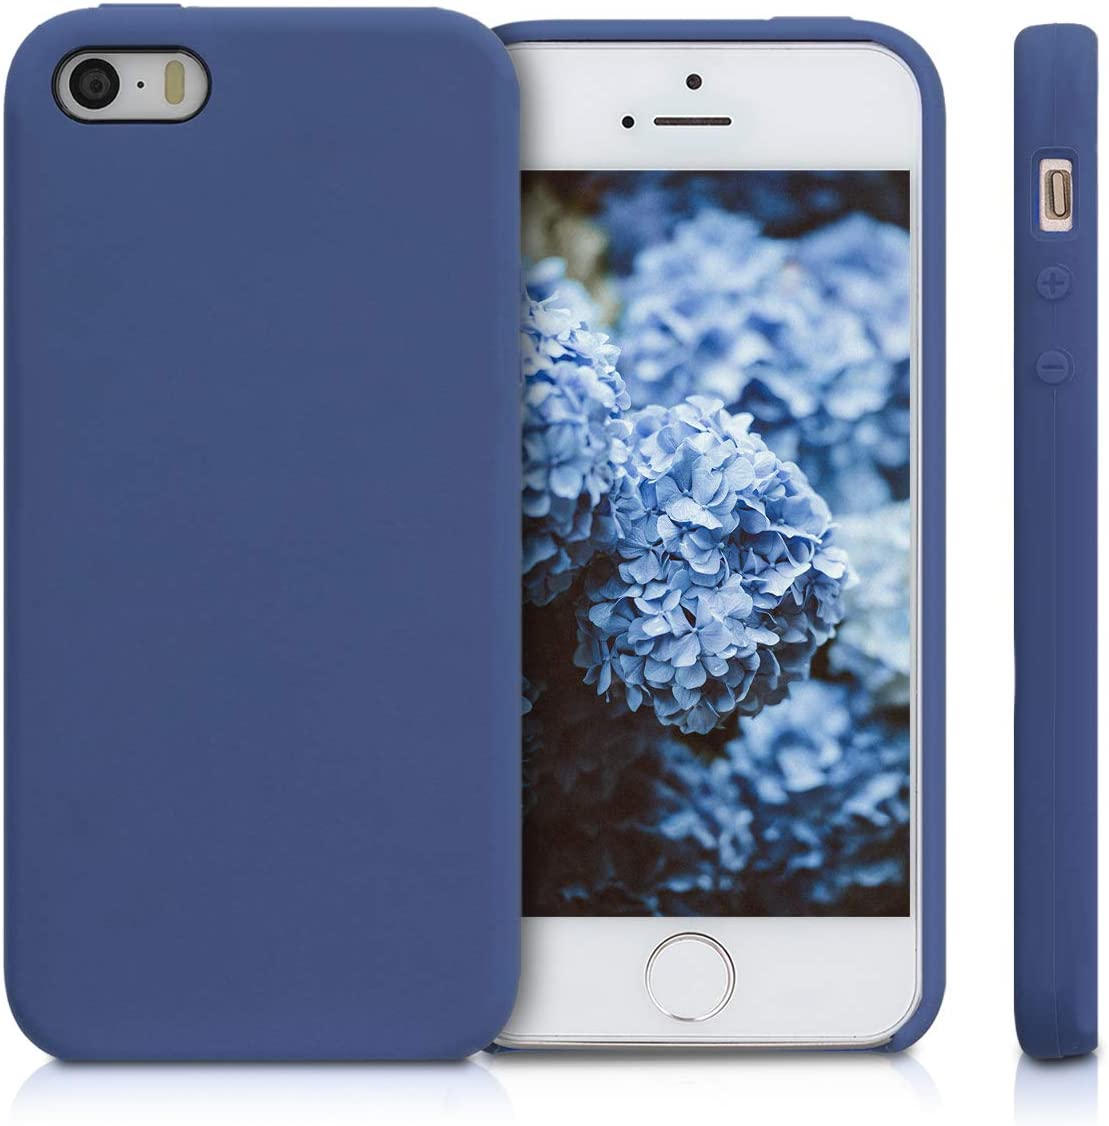 kwmobile TPU Silicone Case Compatible with Apple iPhone SE (1.Gen 2016) / 5 / 5S - Case Slim Phone Cover with Soft Finish - Cornflower Blue